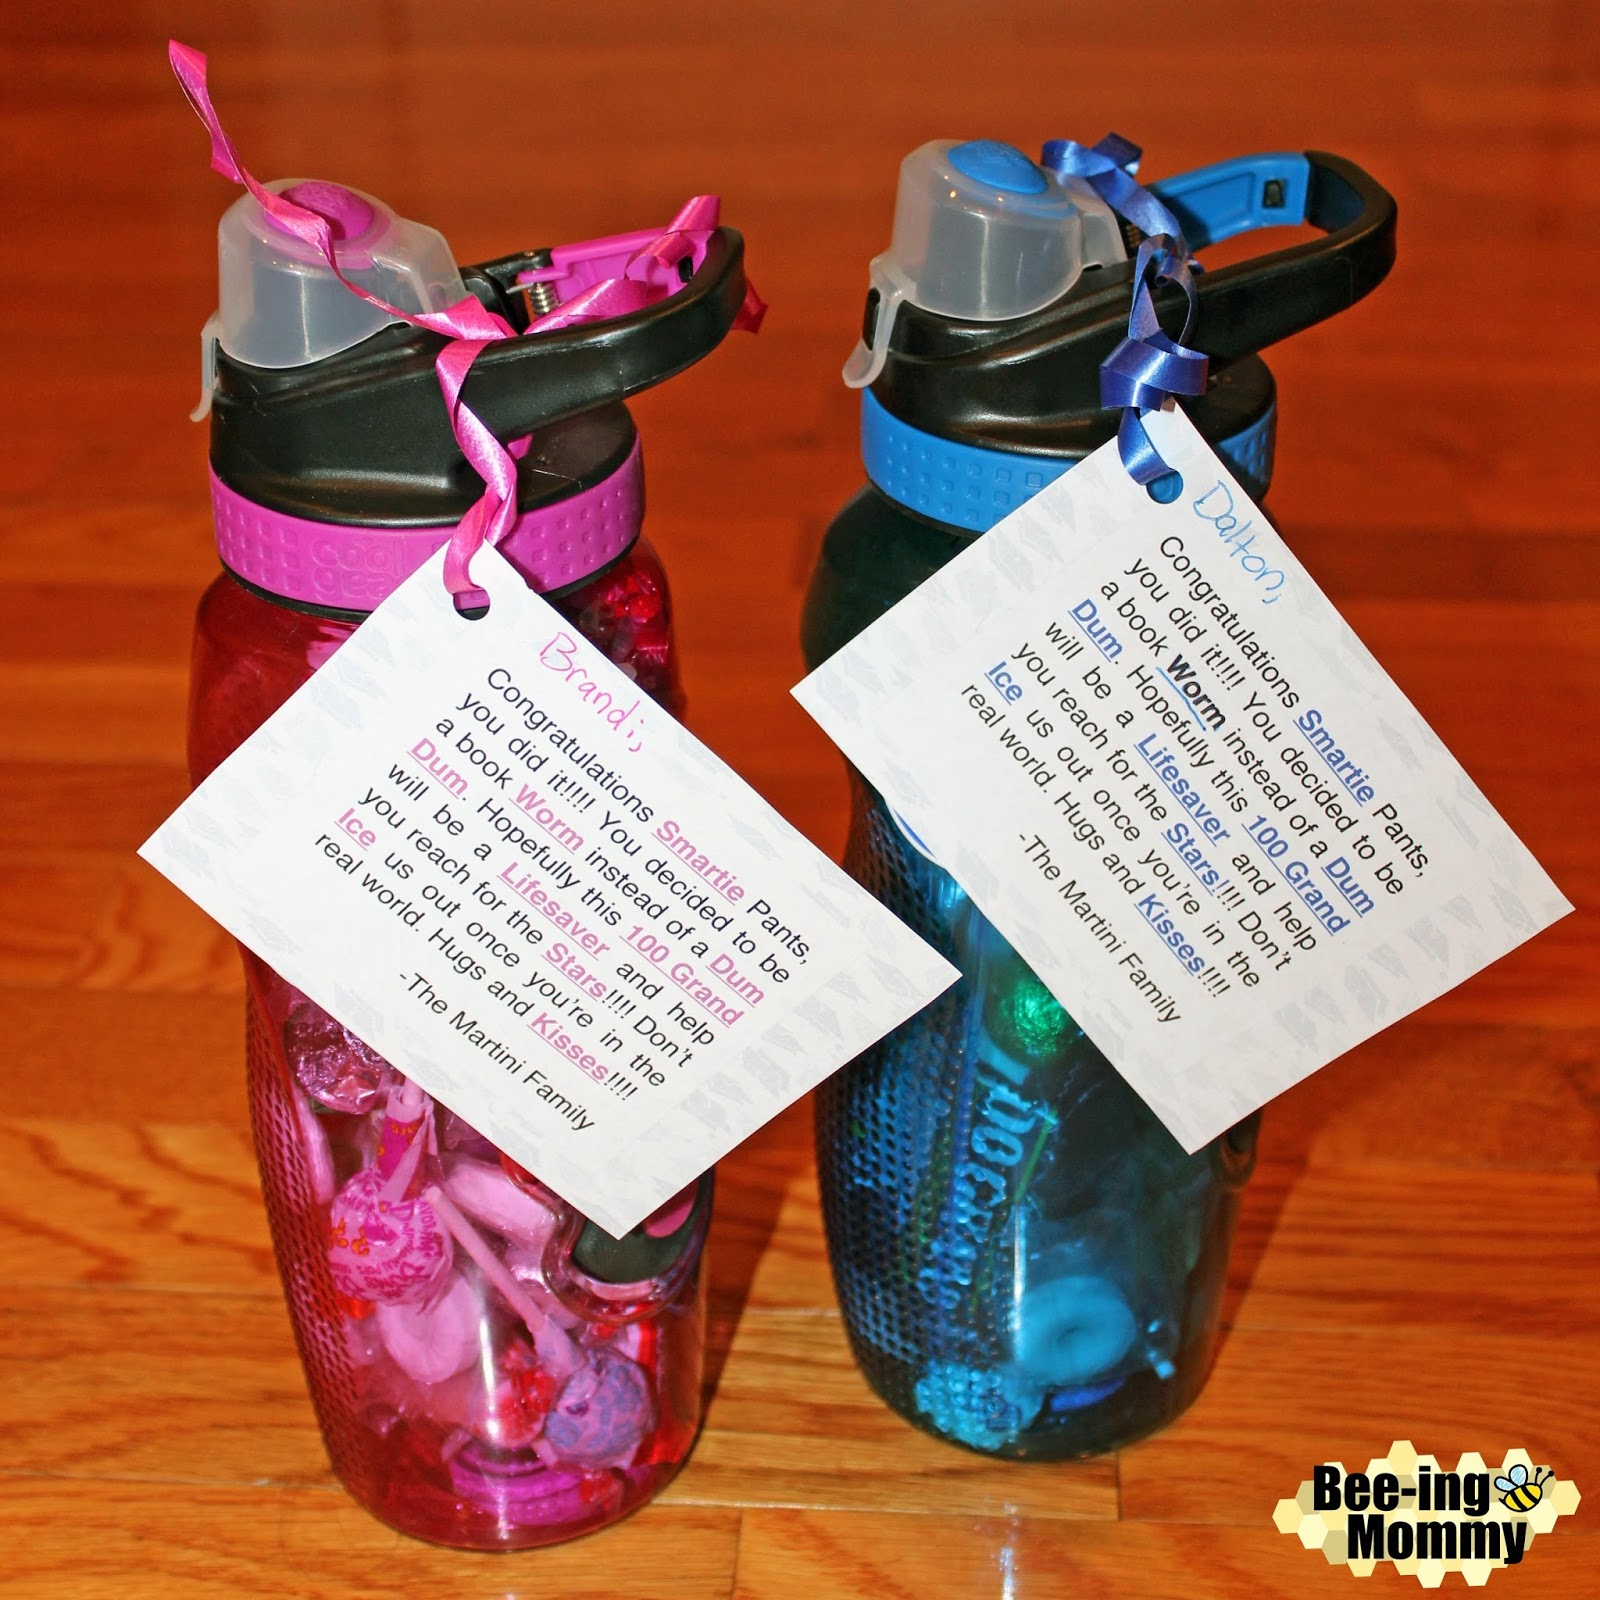 bee ing mommy blog graduation candy saying water bottle gift